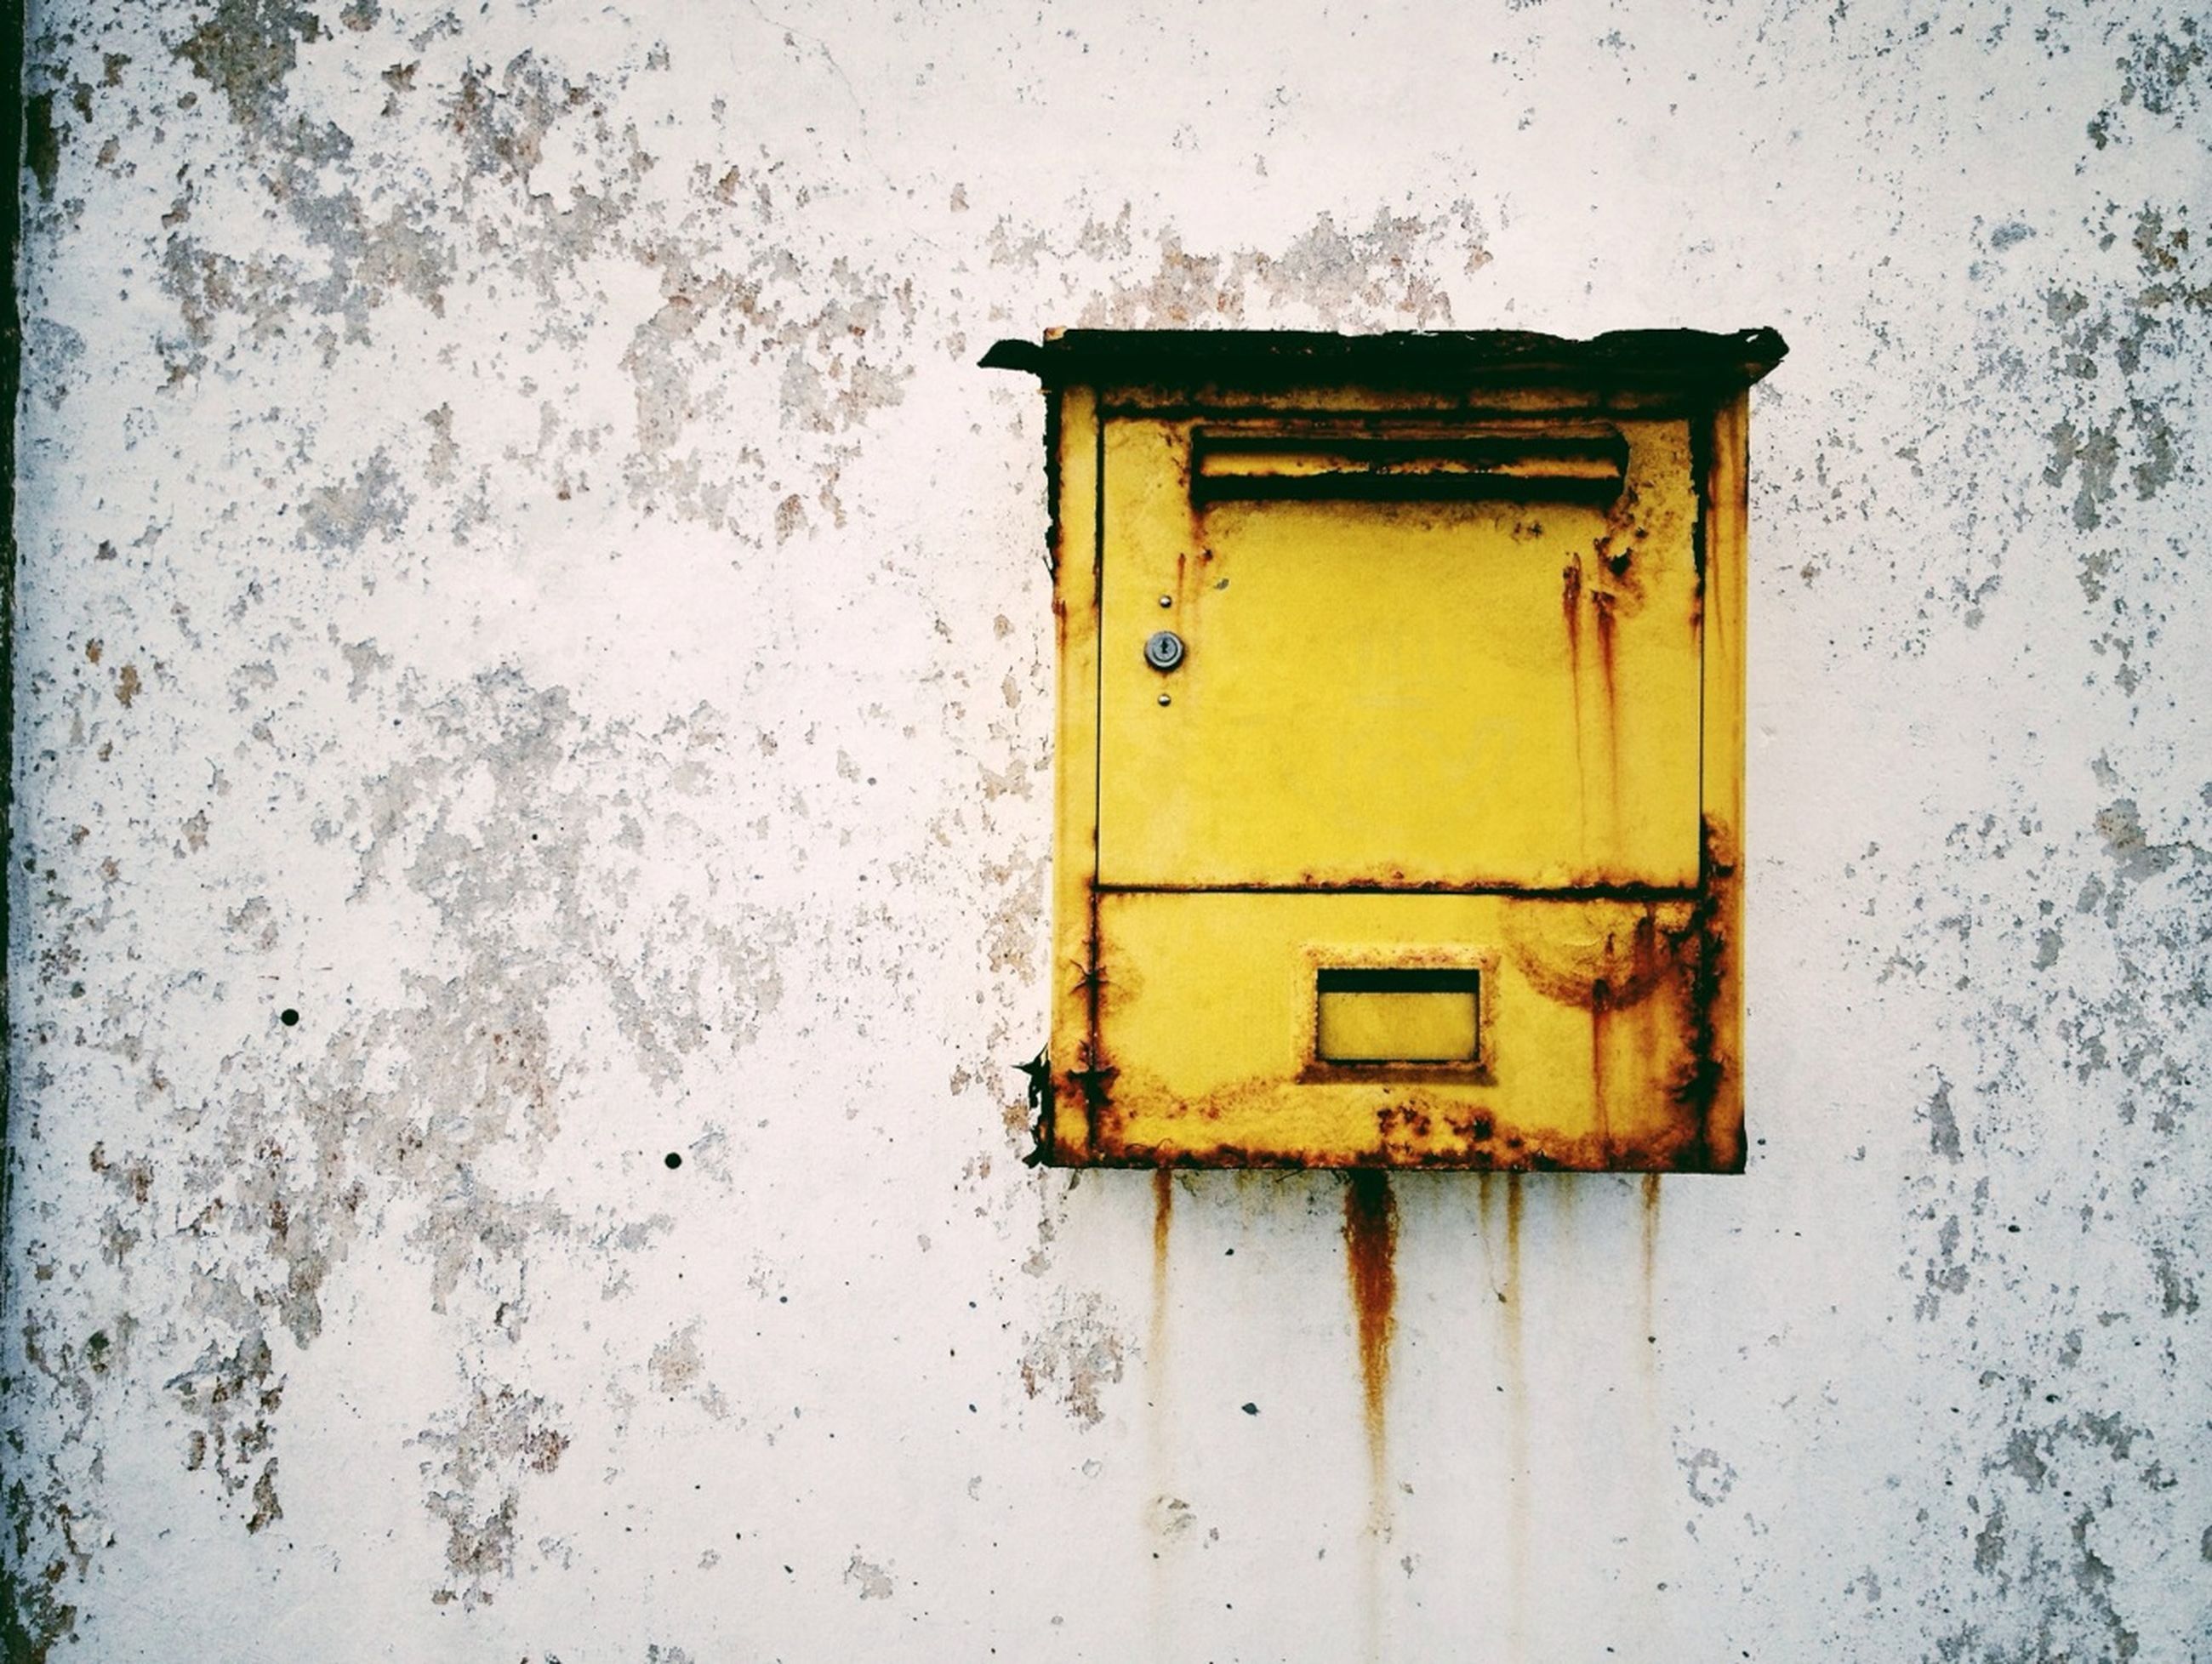 architecture, built structure, building exterior, yellow, wall - building feature, house, season, snow, cold temperature, door, weather, winter, window, wall, closed, residential structure, outdoors, no people, day, weathered